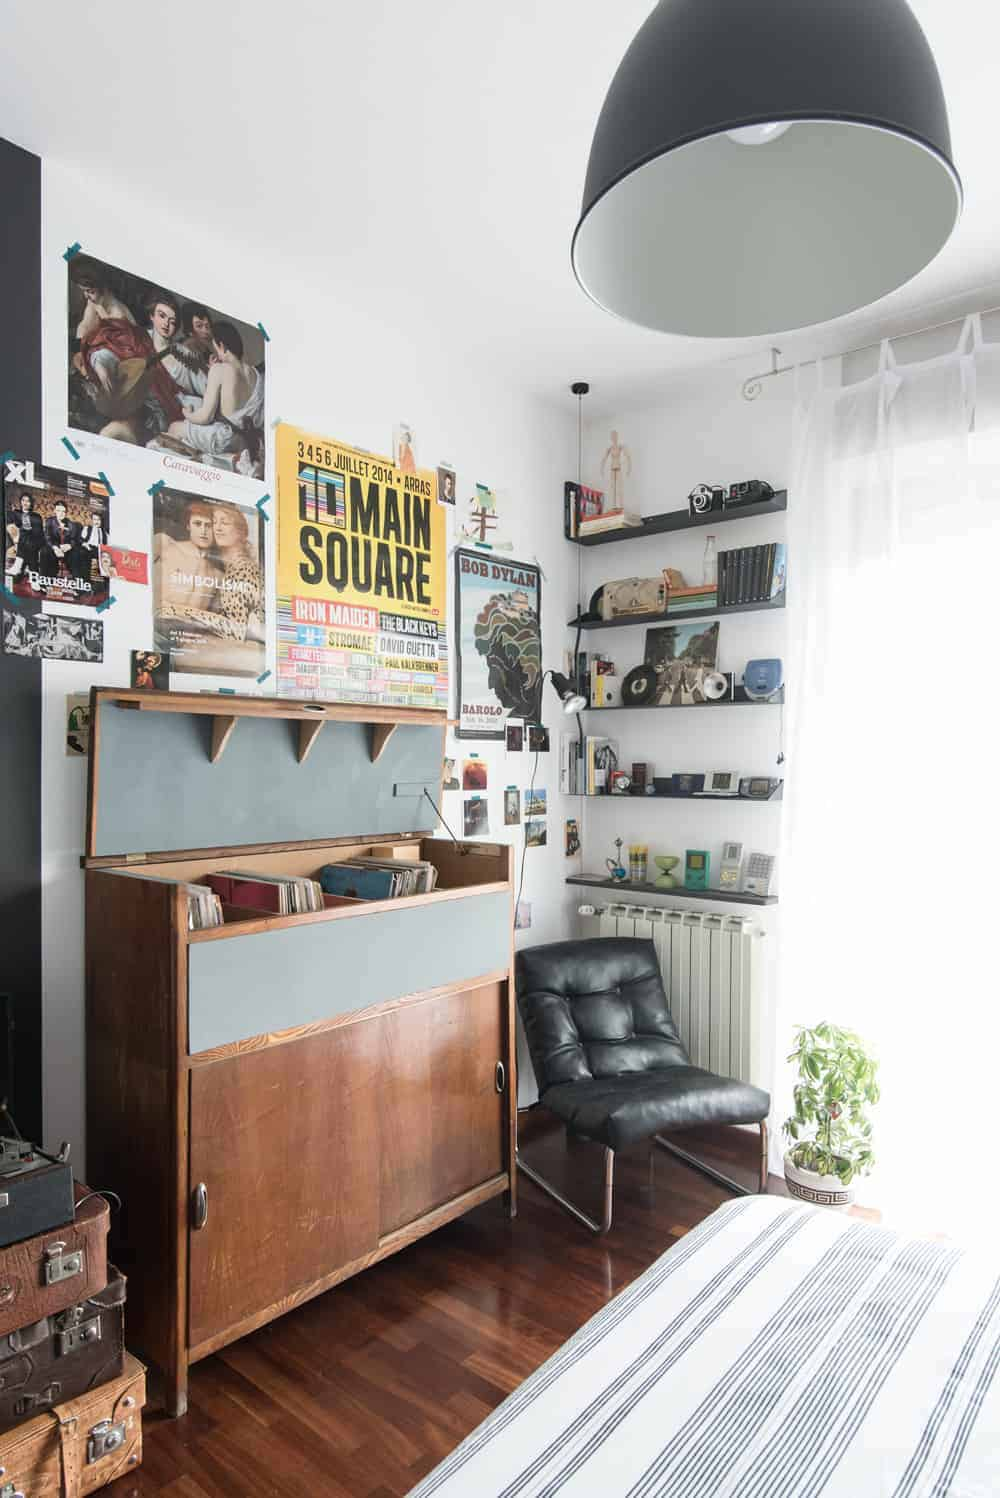 Bedroom for a guy - vintage and industrial style - wall ideas